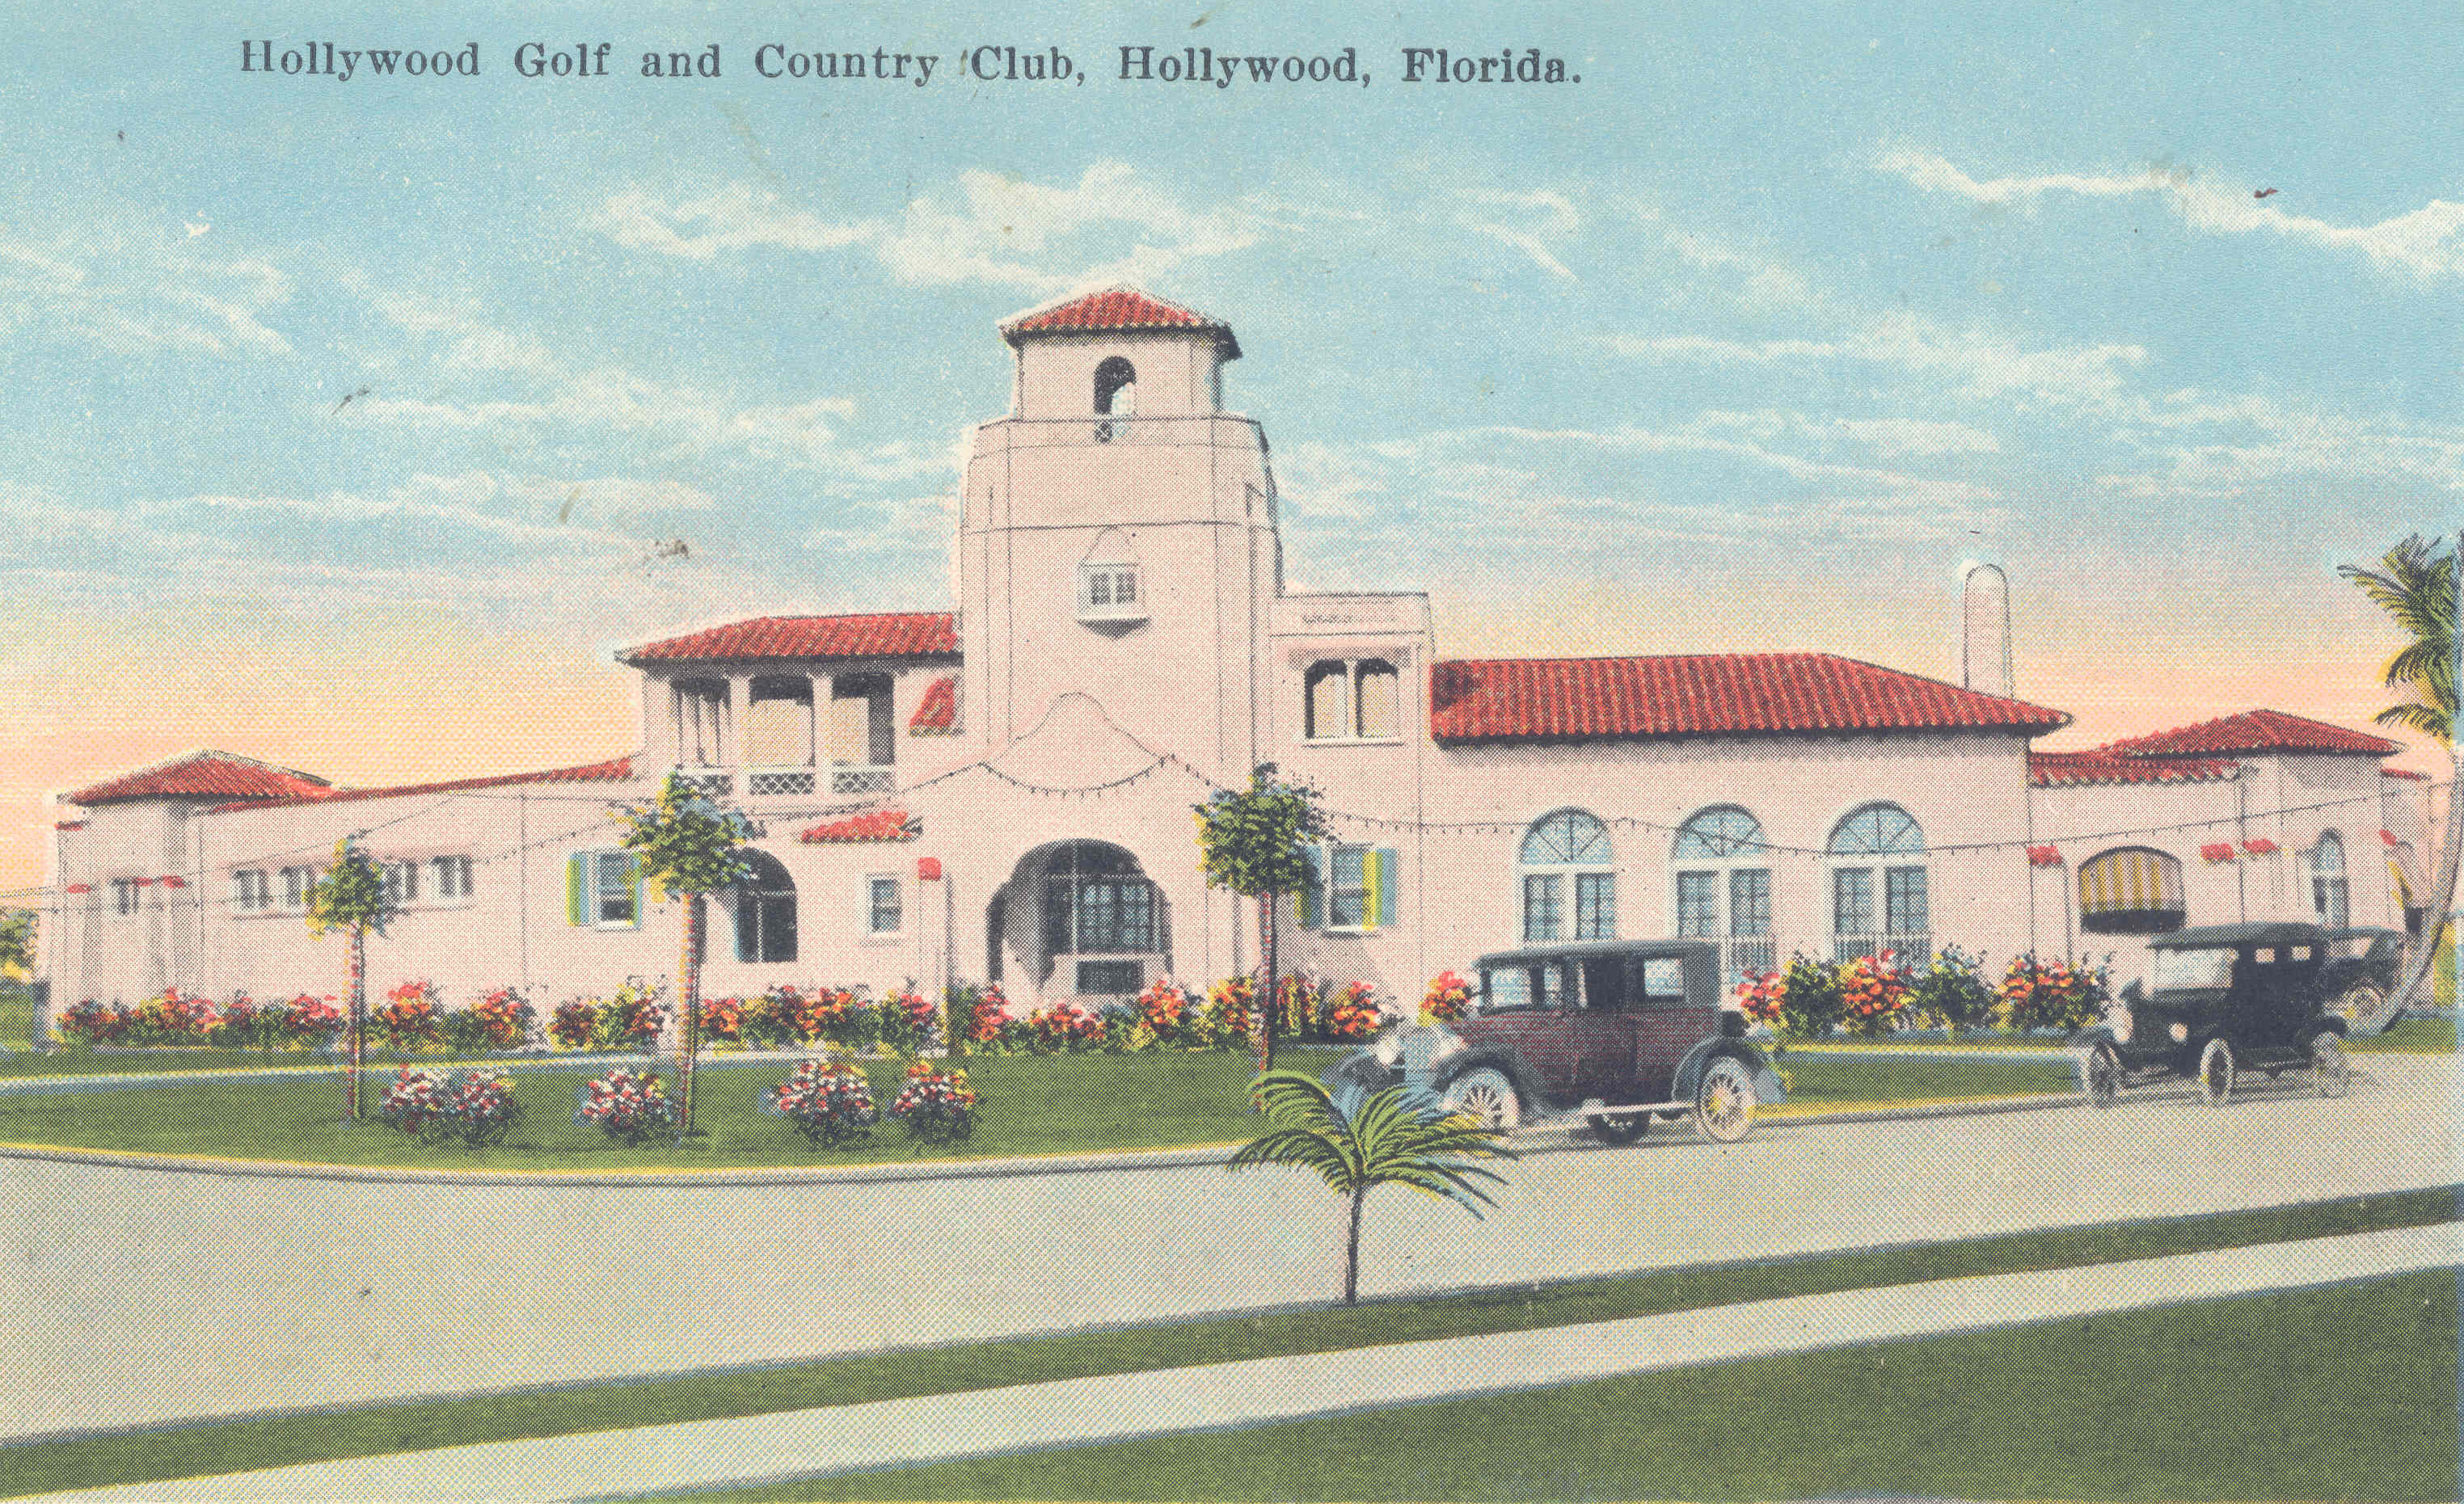 Hollywood Golf and Country Club